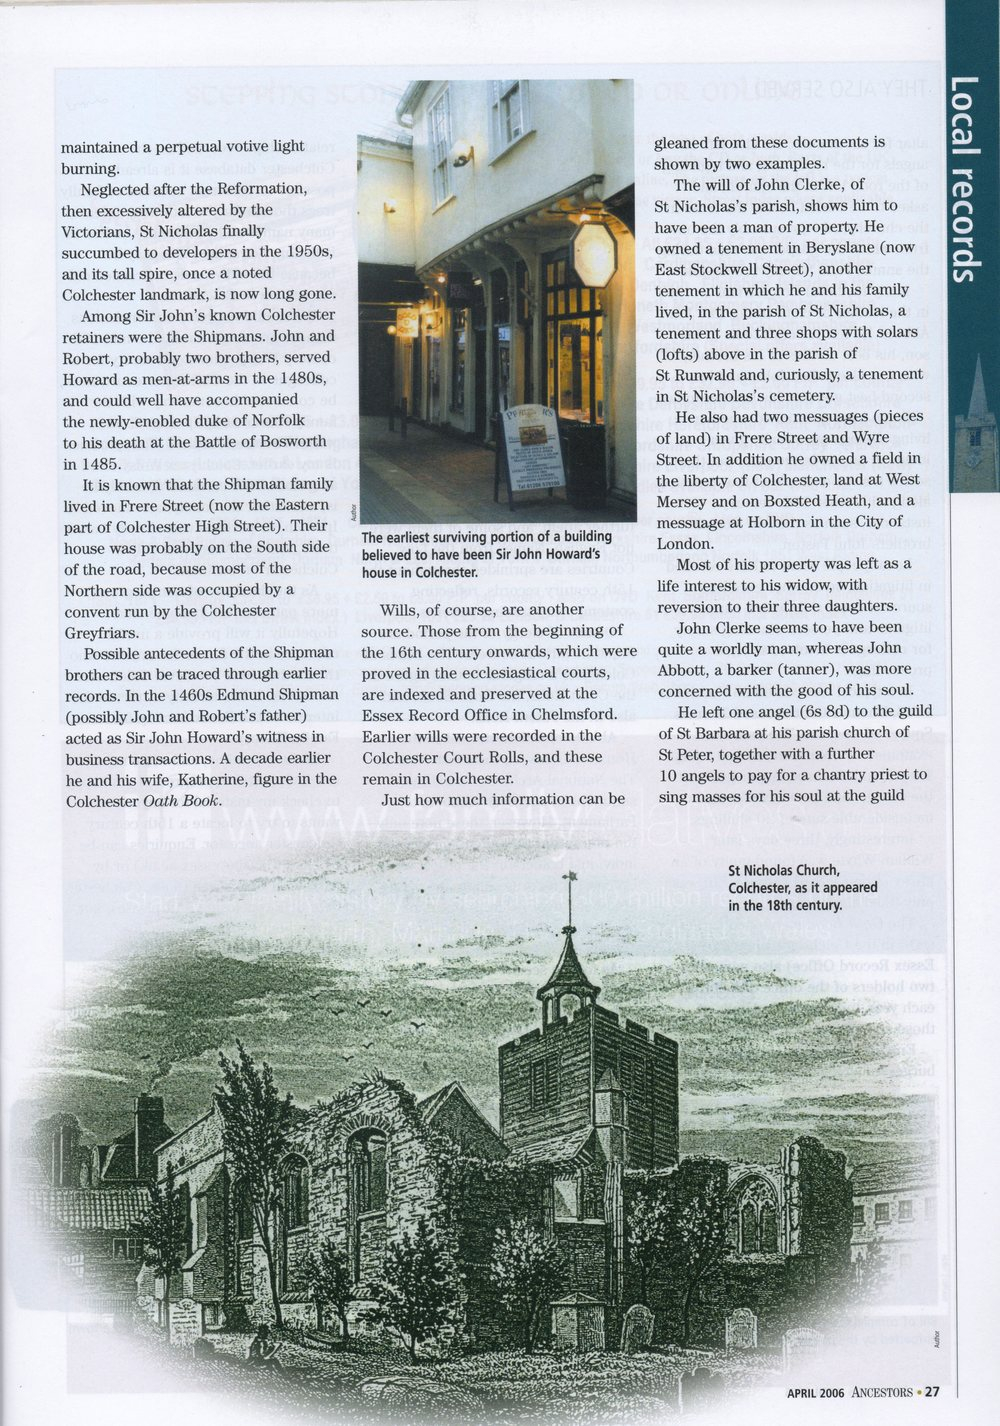 Ancestors magazine April 2006, p. 27.jpg